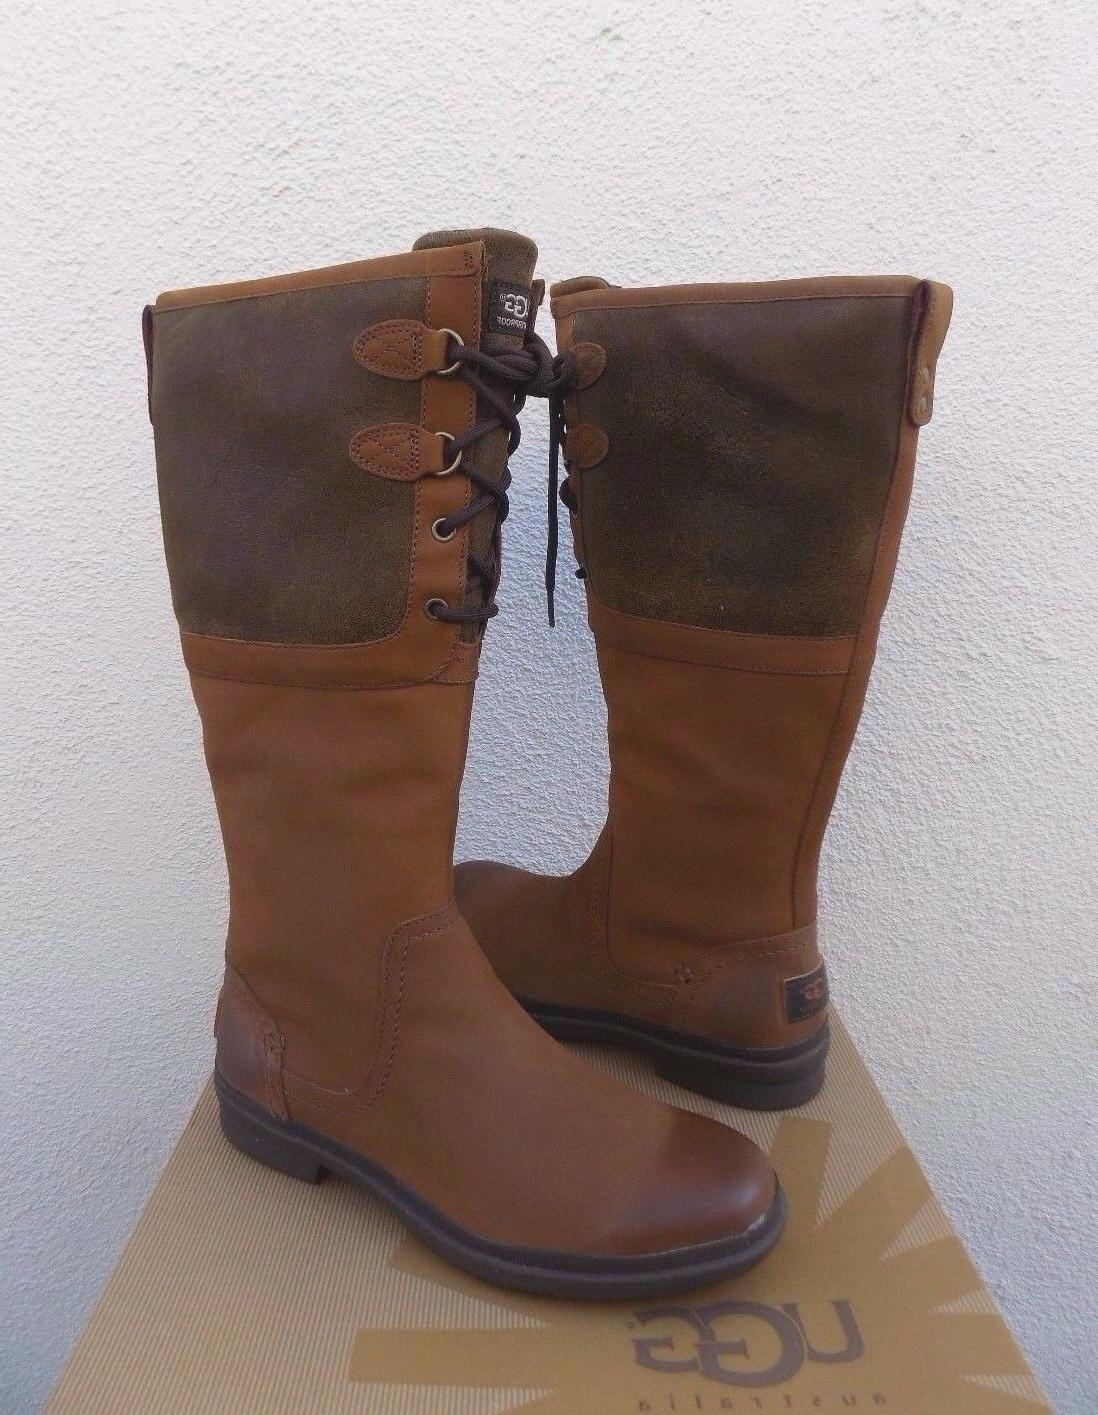 UGG CHESTNUT WATERPROOF LEATHER BOOTS, 6.5/ 37.5 NEW